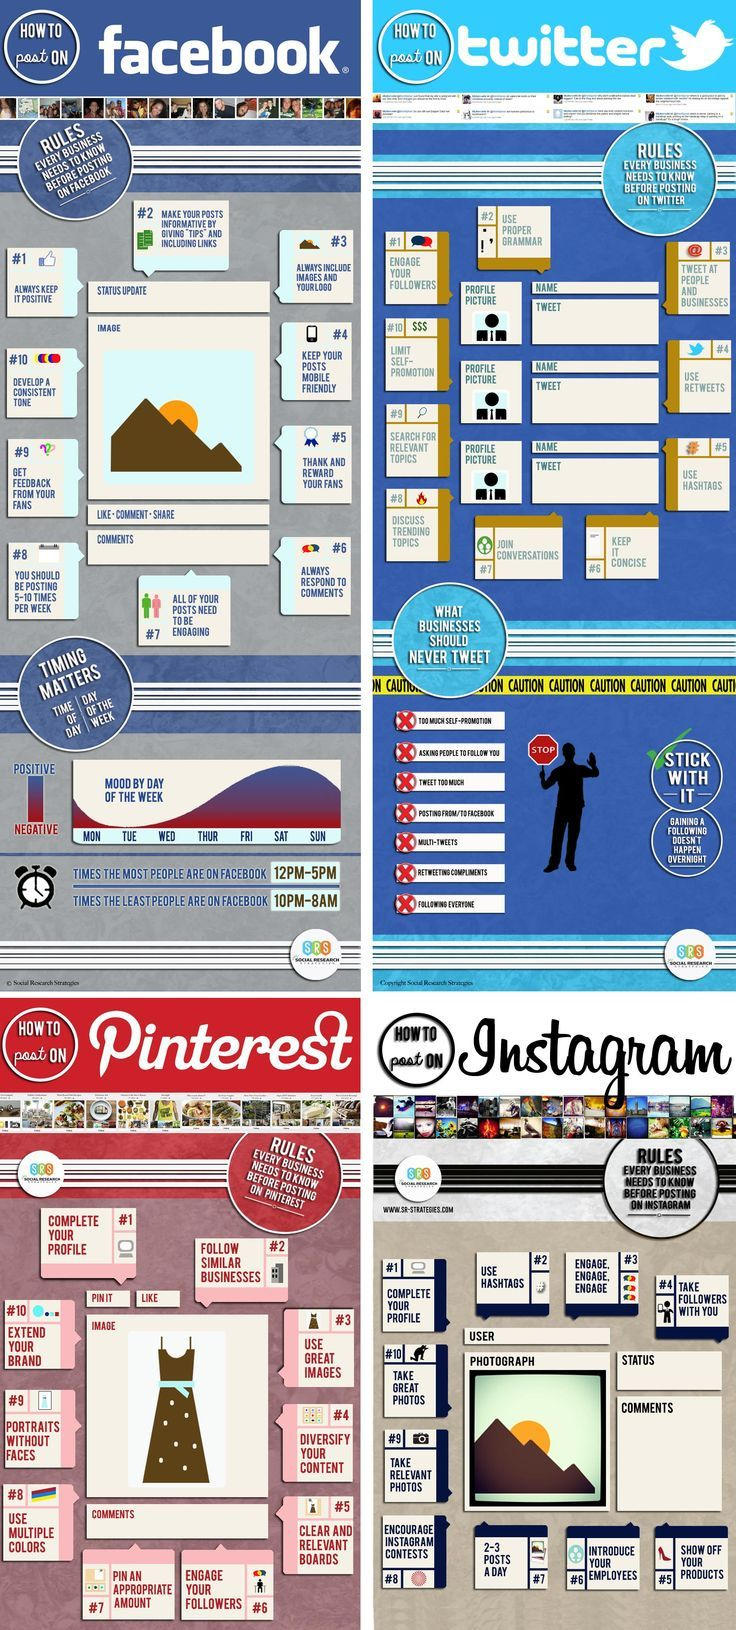 10 Rules That Every Business Needs To Know Before They Post #infographics #socialmedia